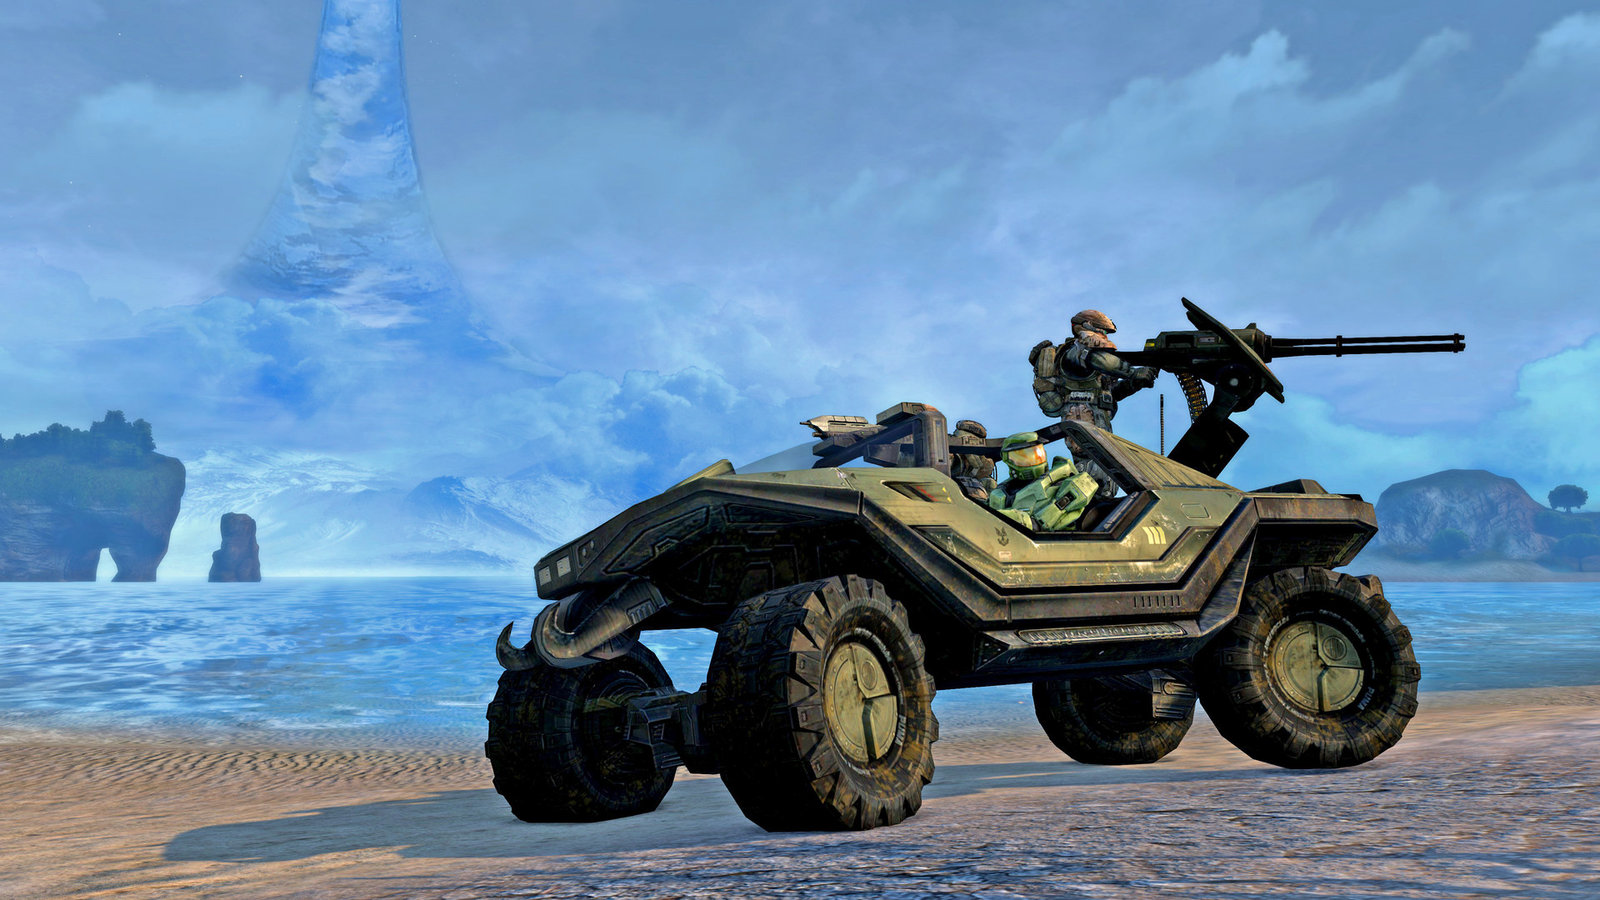 Halo: The Master Chief Collection image 1